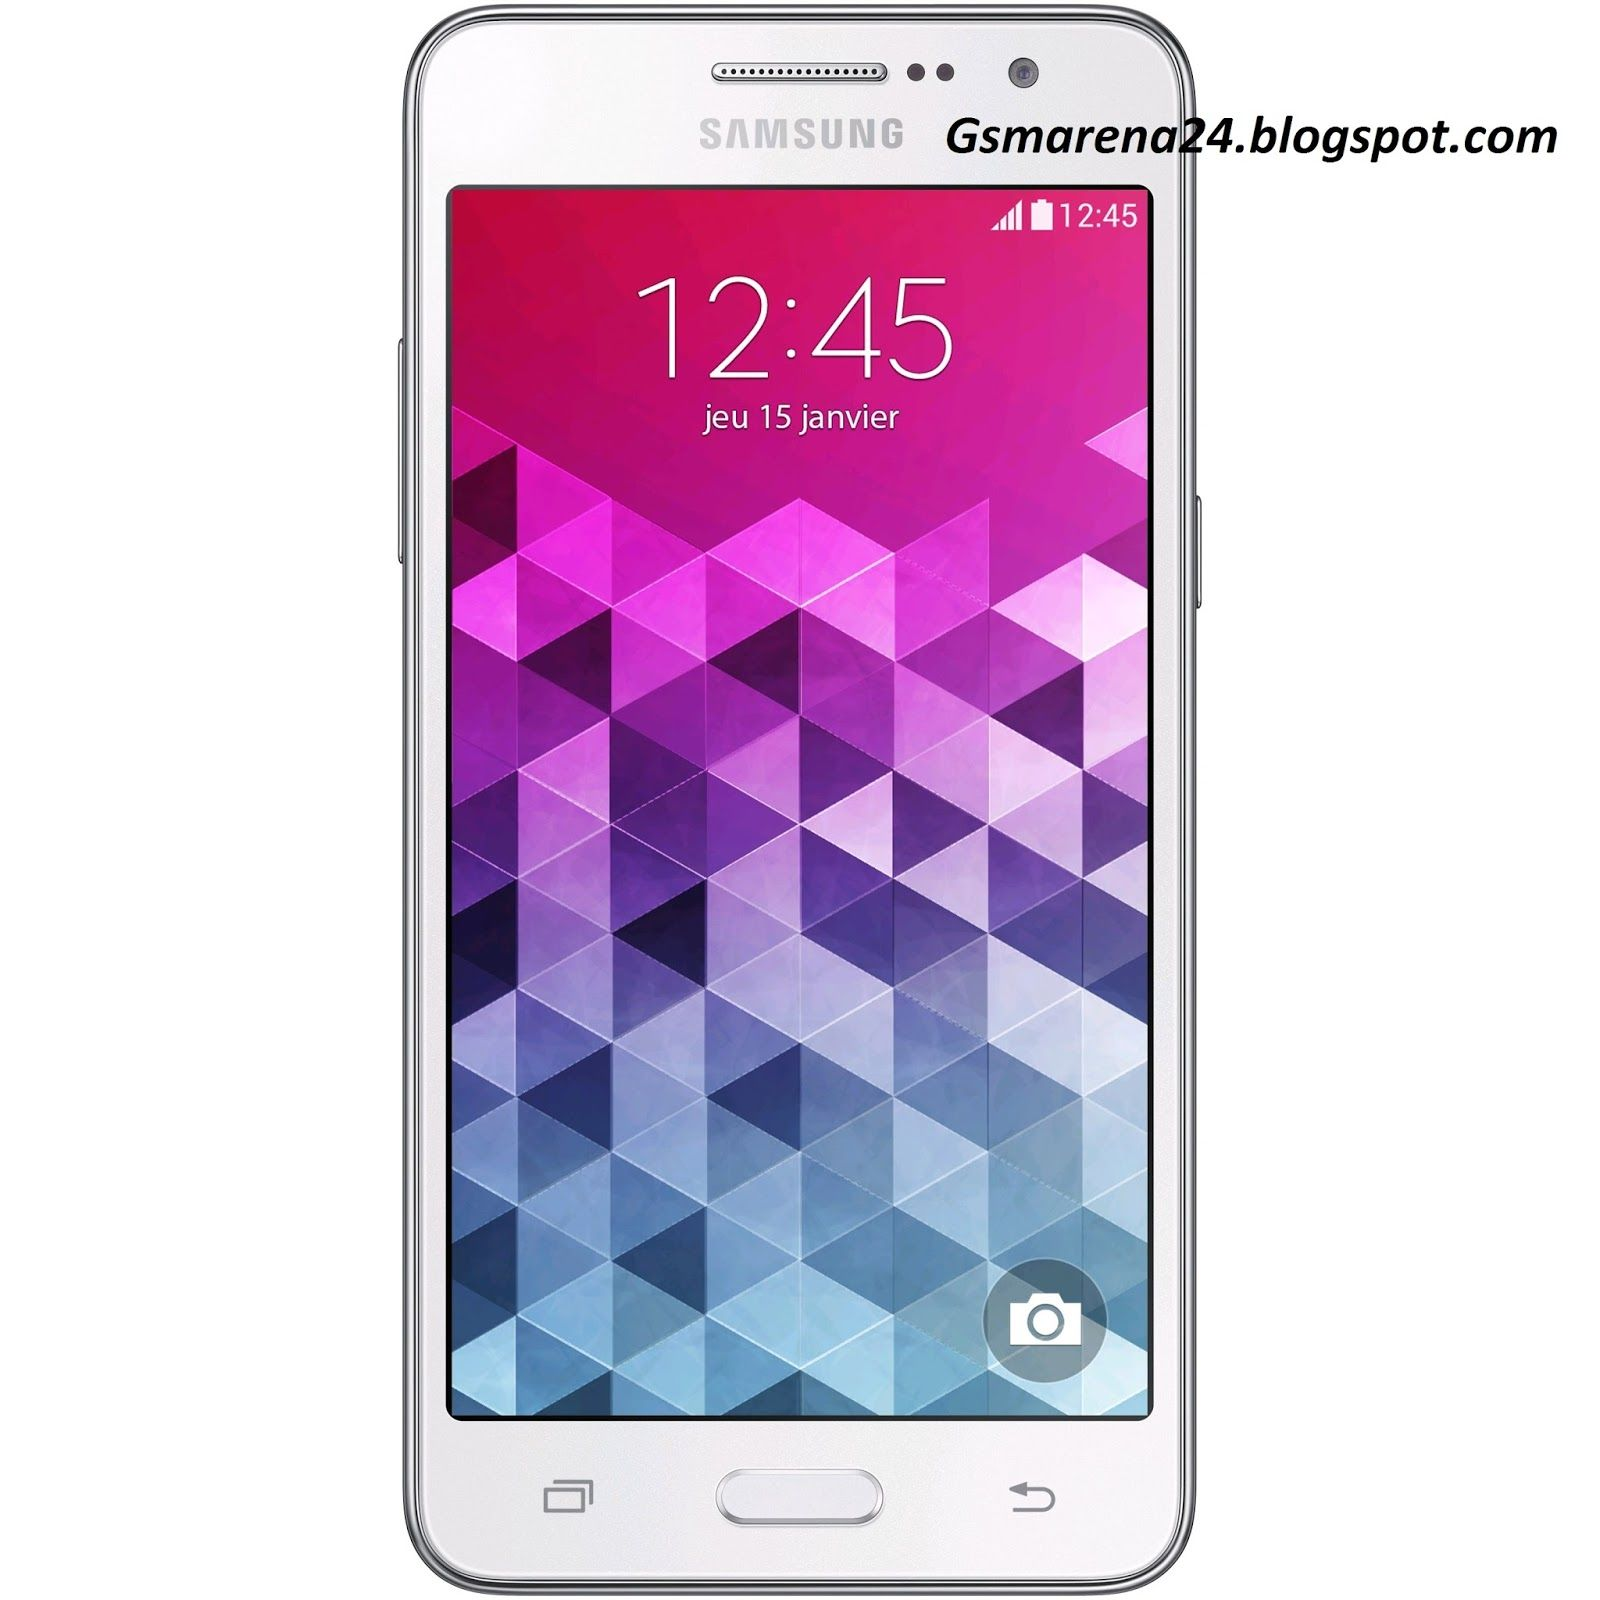 twrp-smg530h tar download, twrp for galaxy grand prime sm